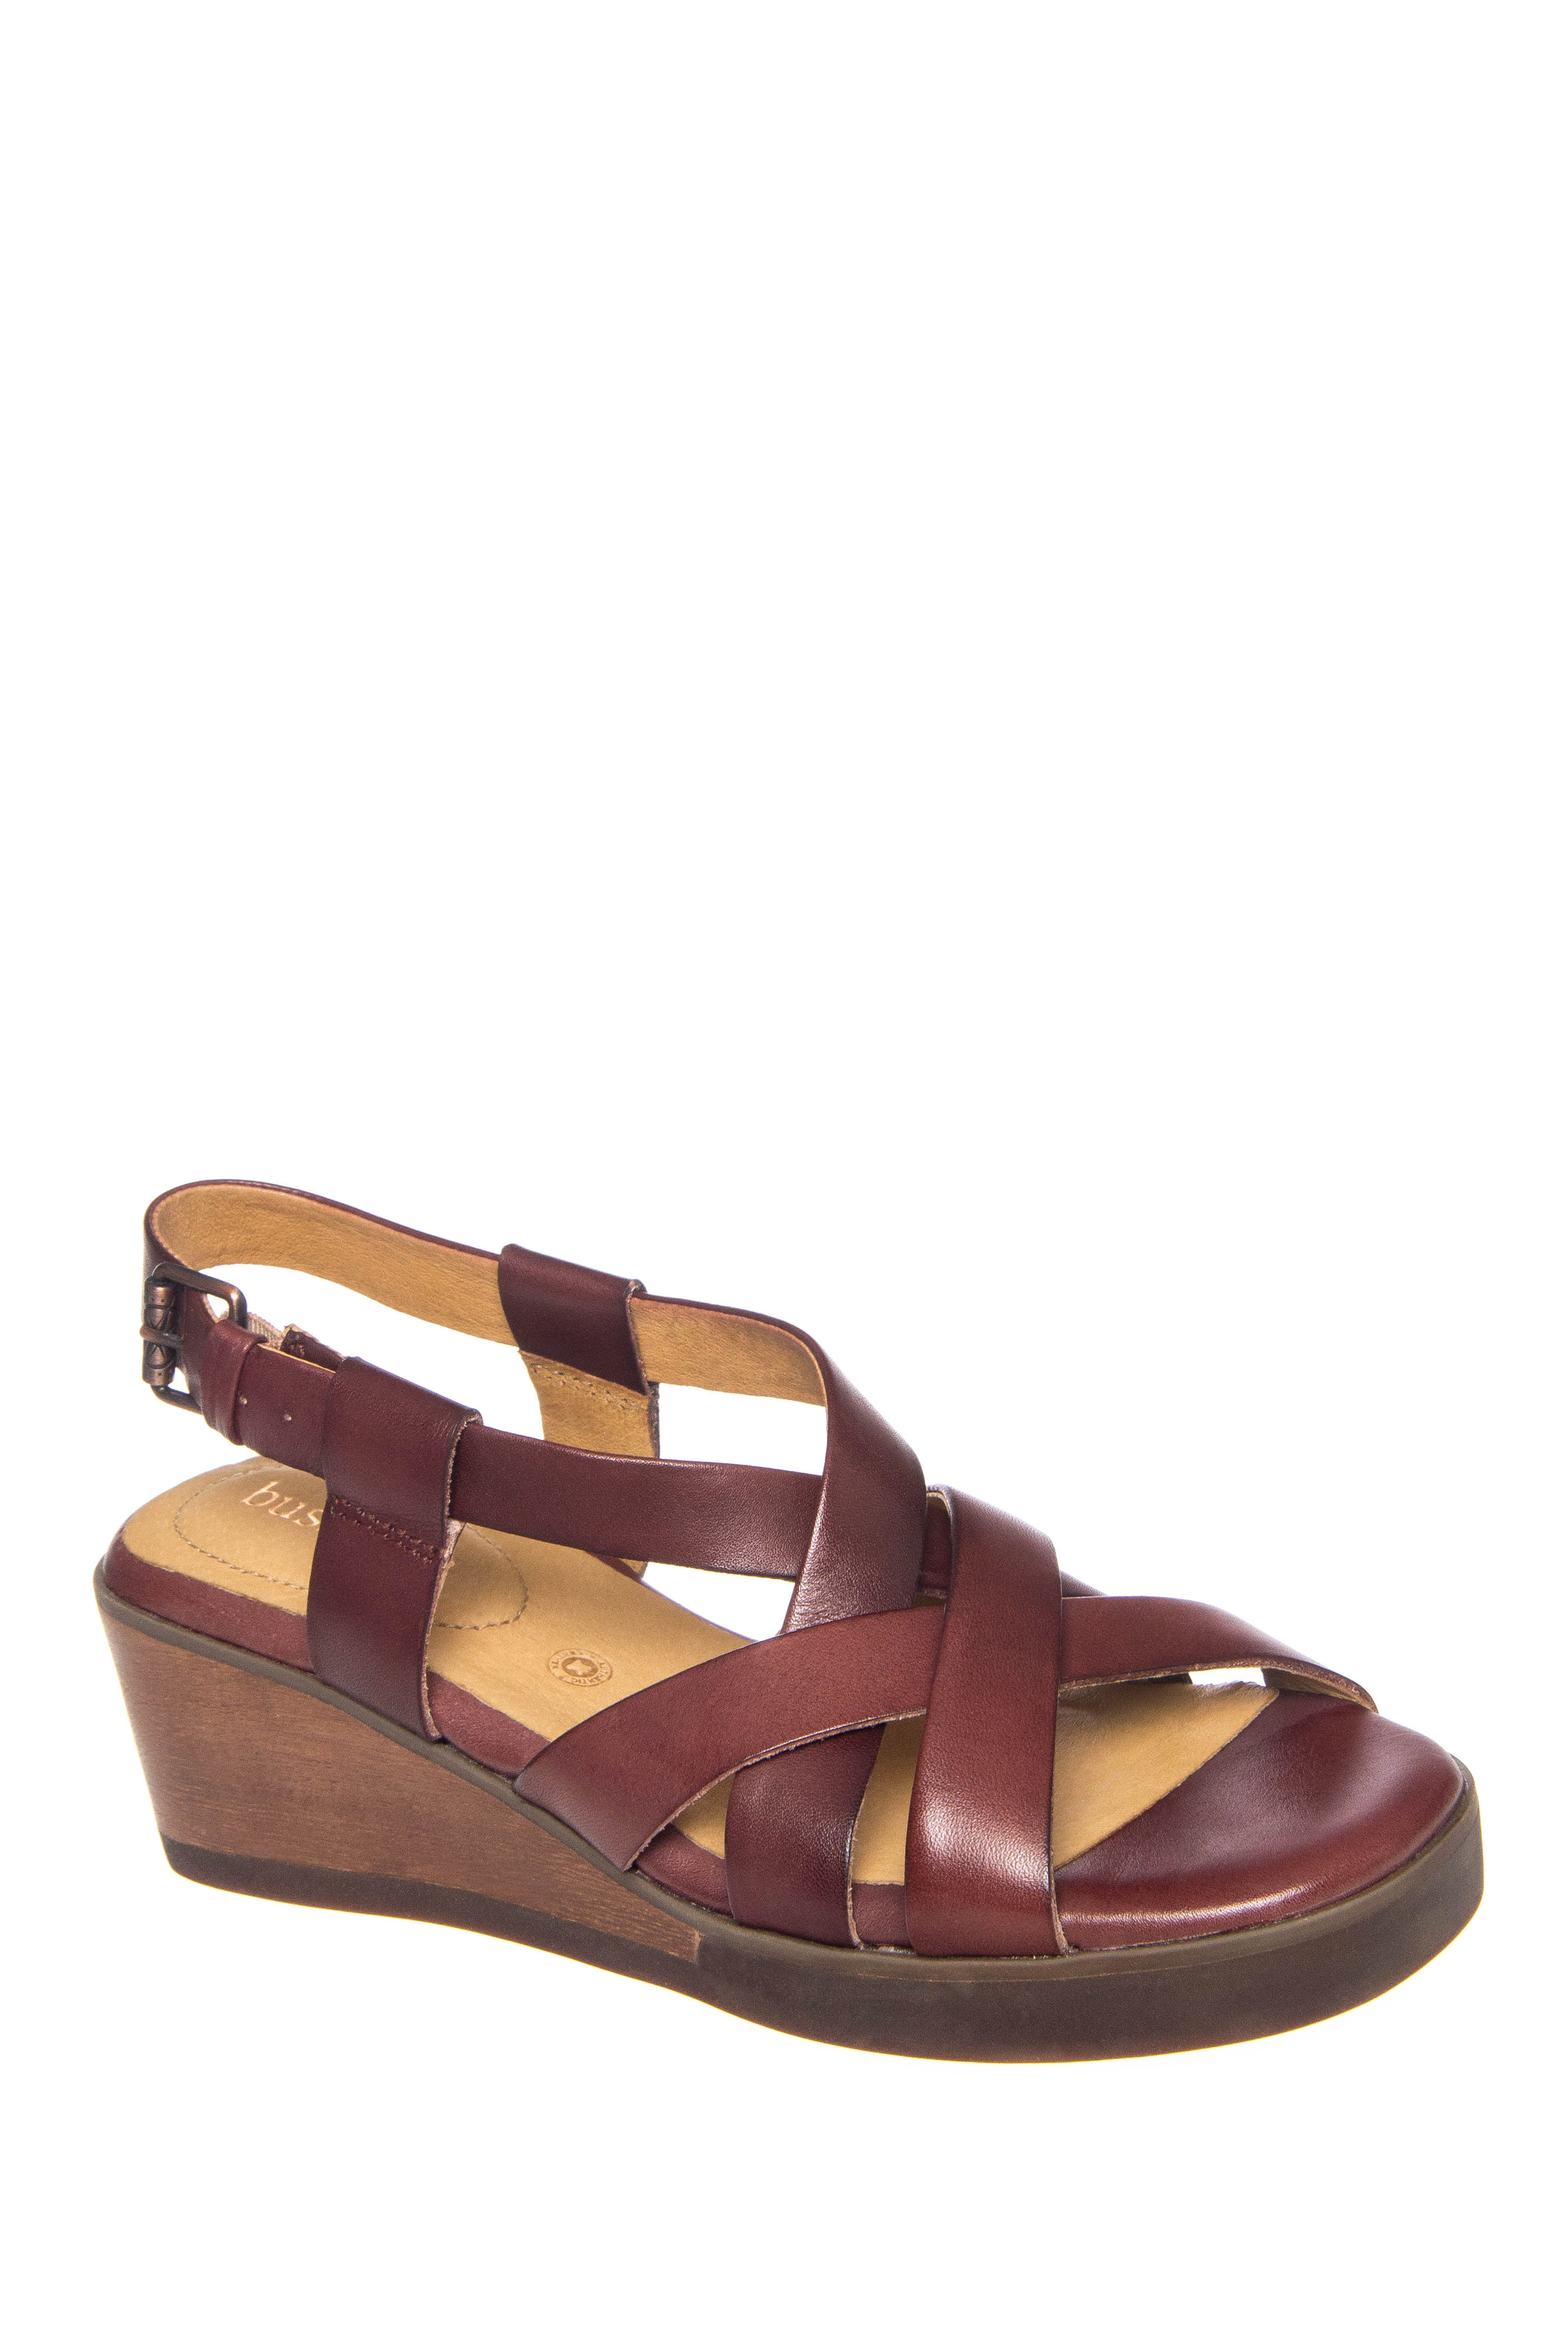 Bussola Massa Mid Wedge Sandals - Corten